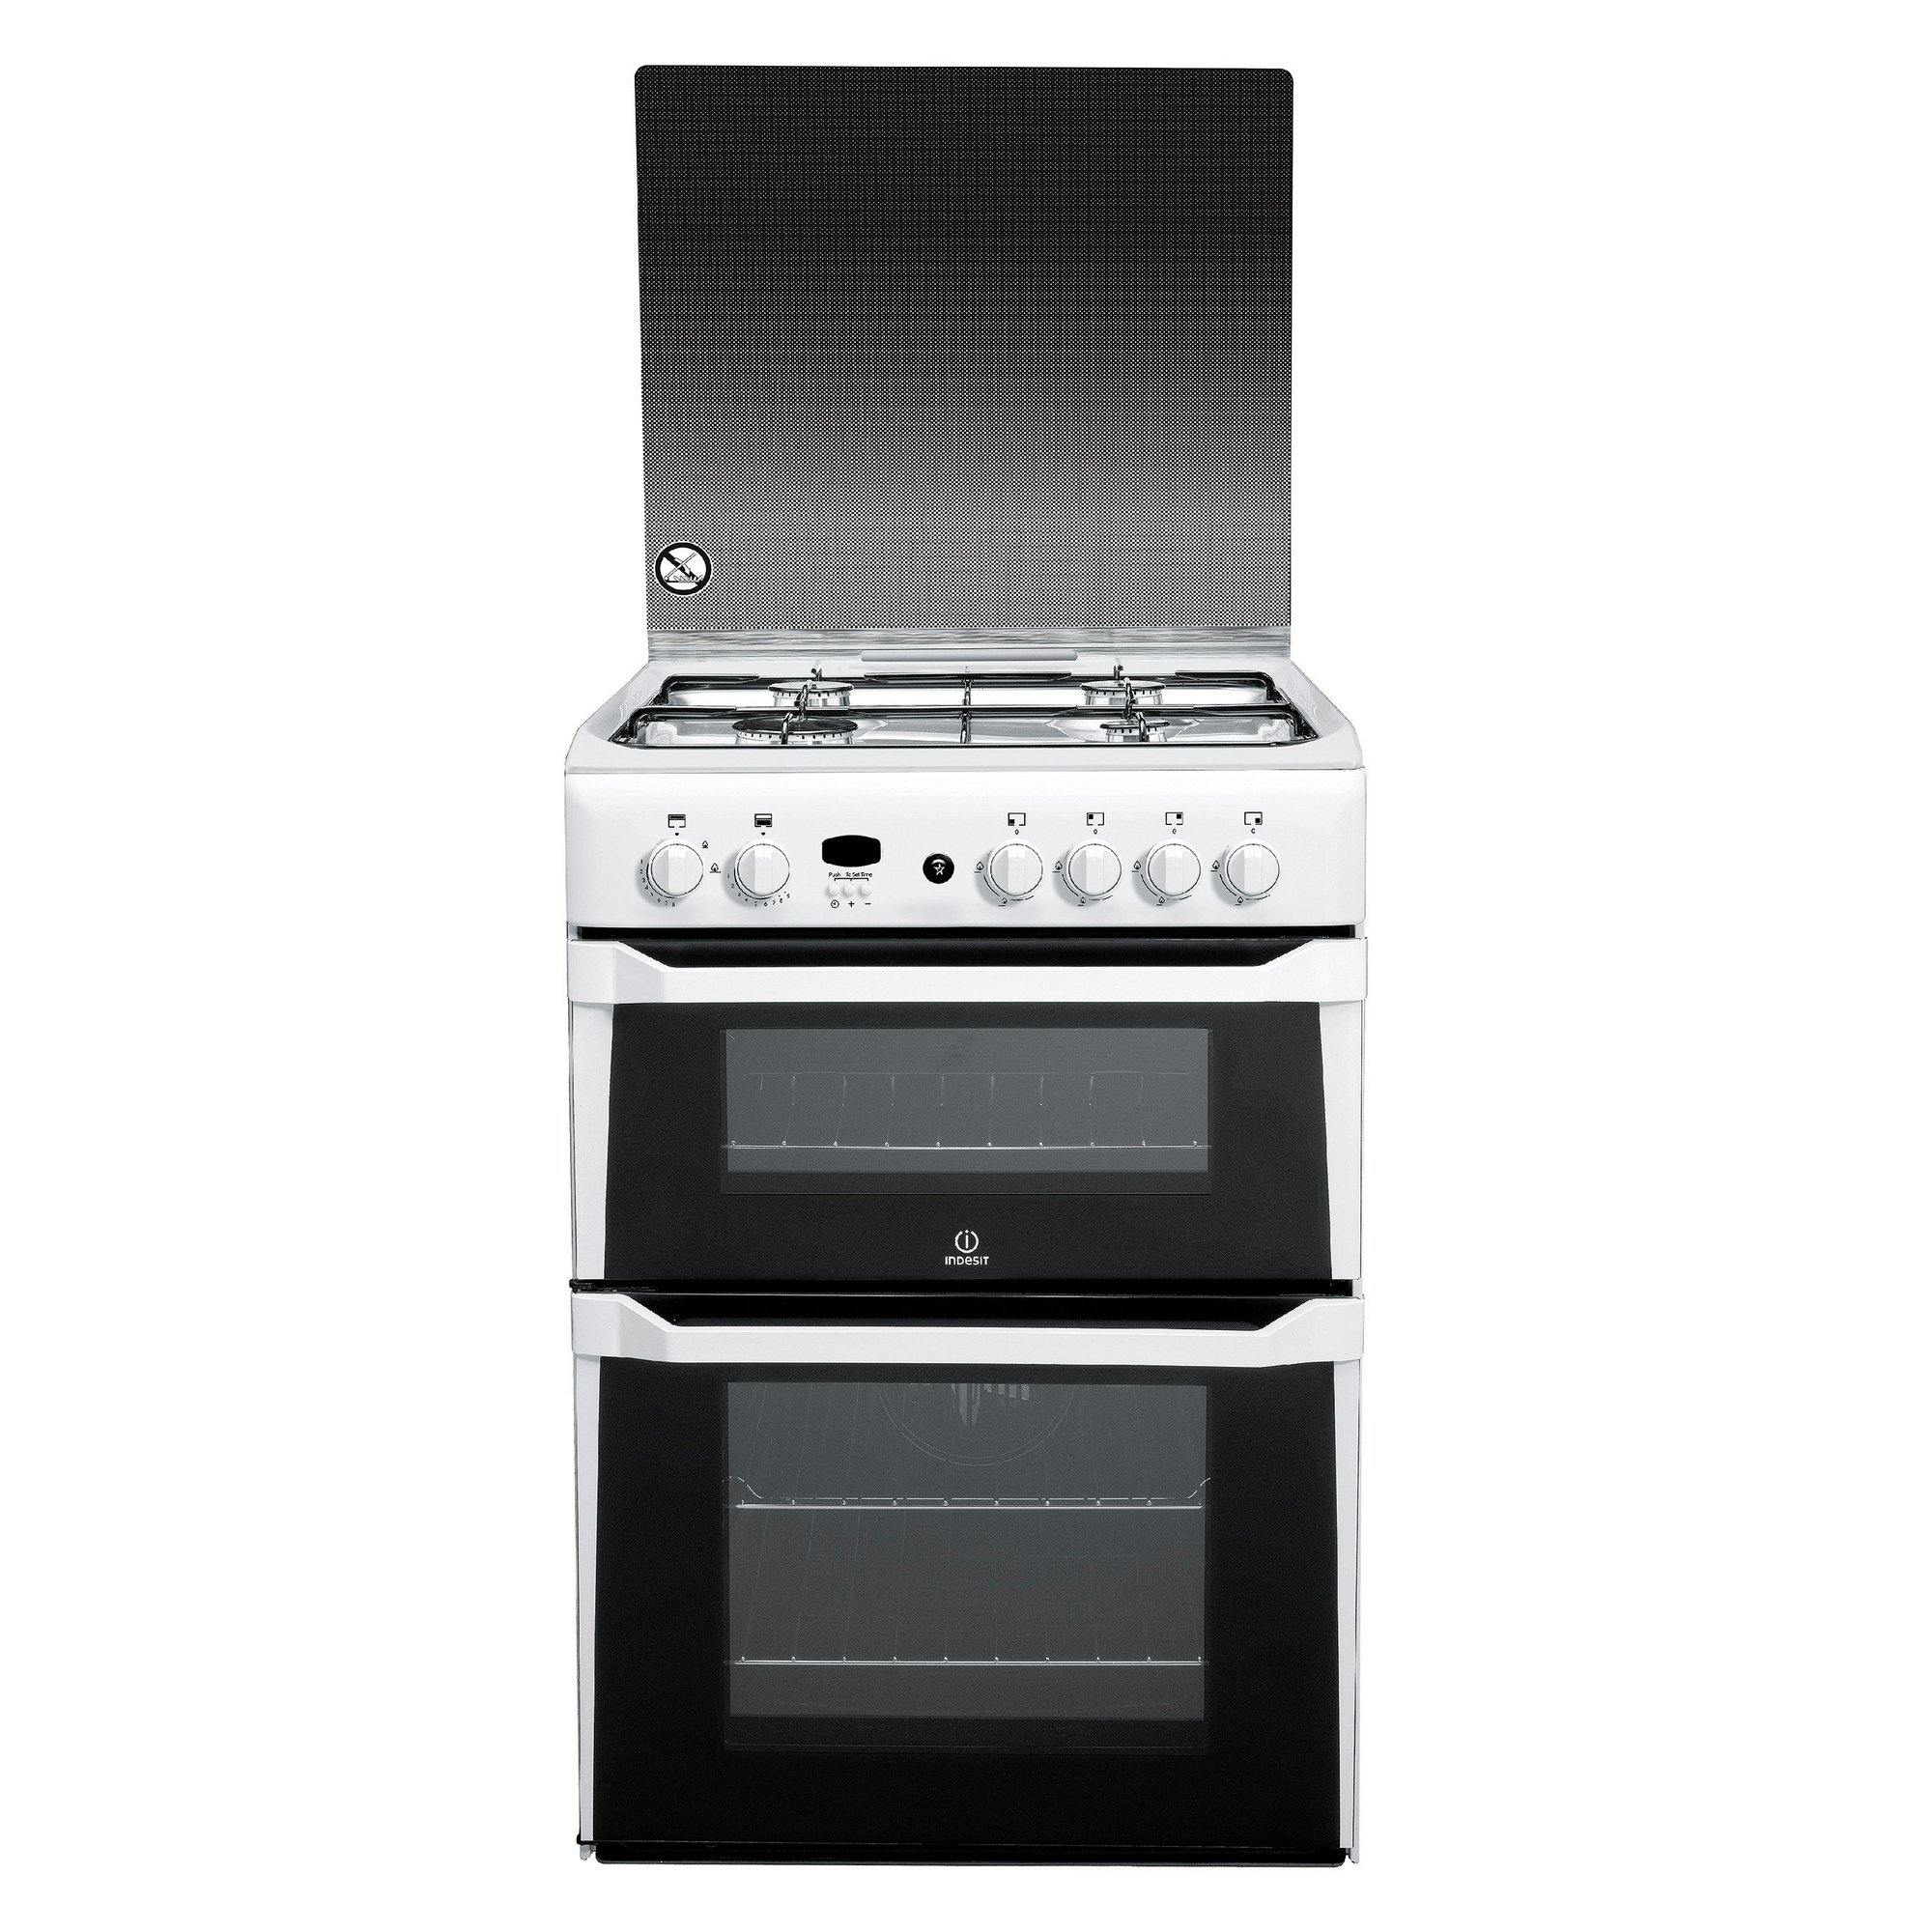 Image of Indesit 60cm Double Oven Gas Cooker